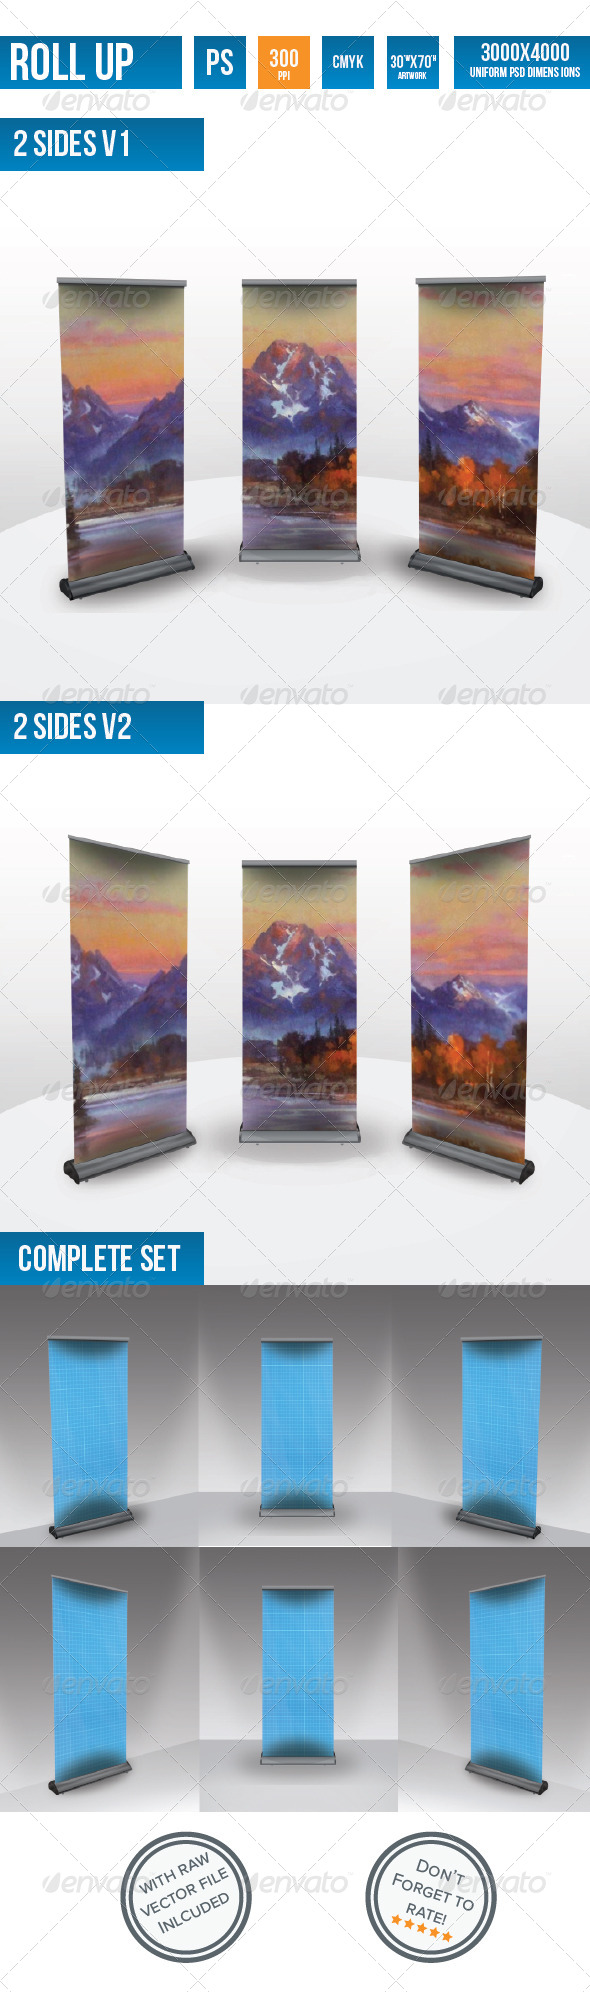 GraphicRiver Roll Up Banner Mock Up s 4101629